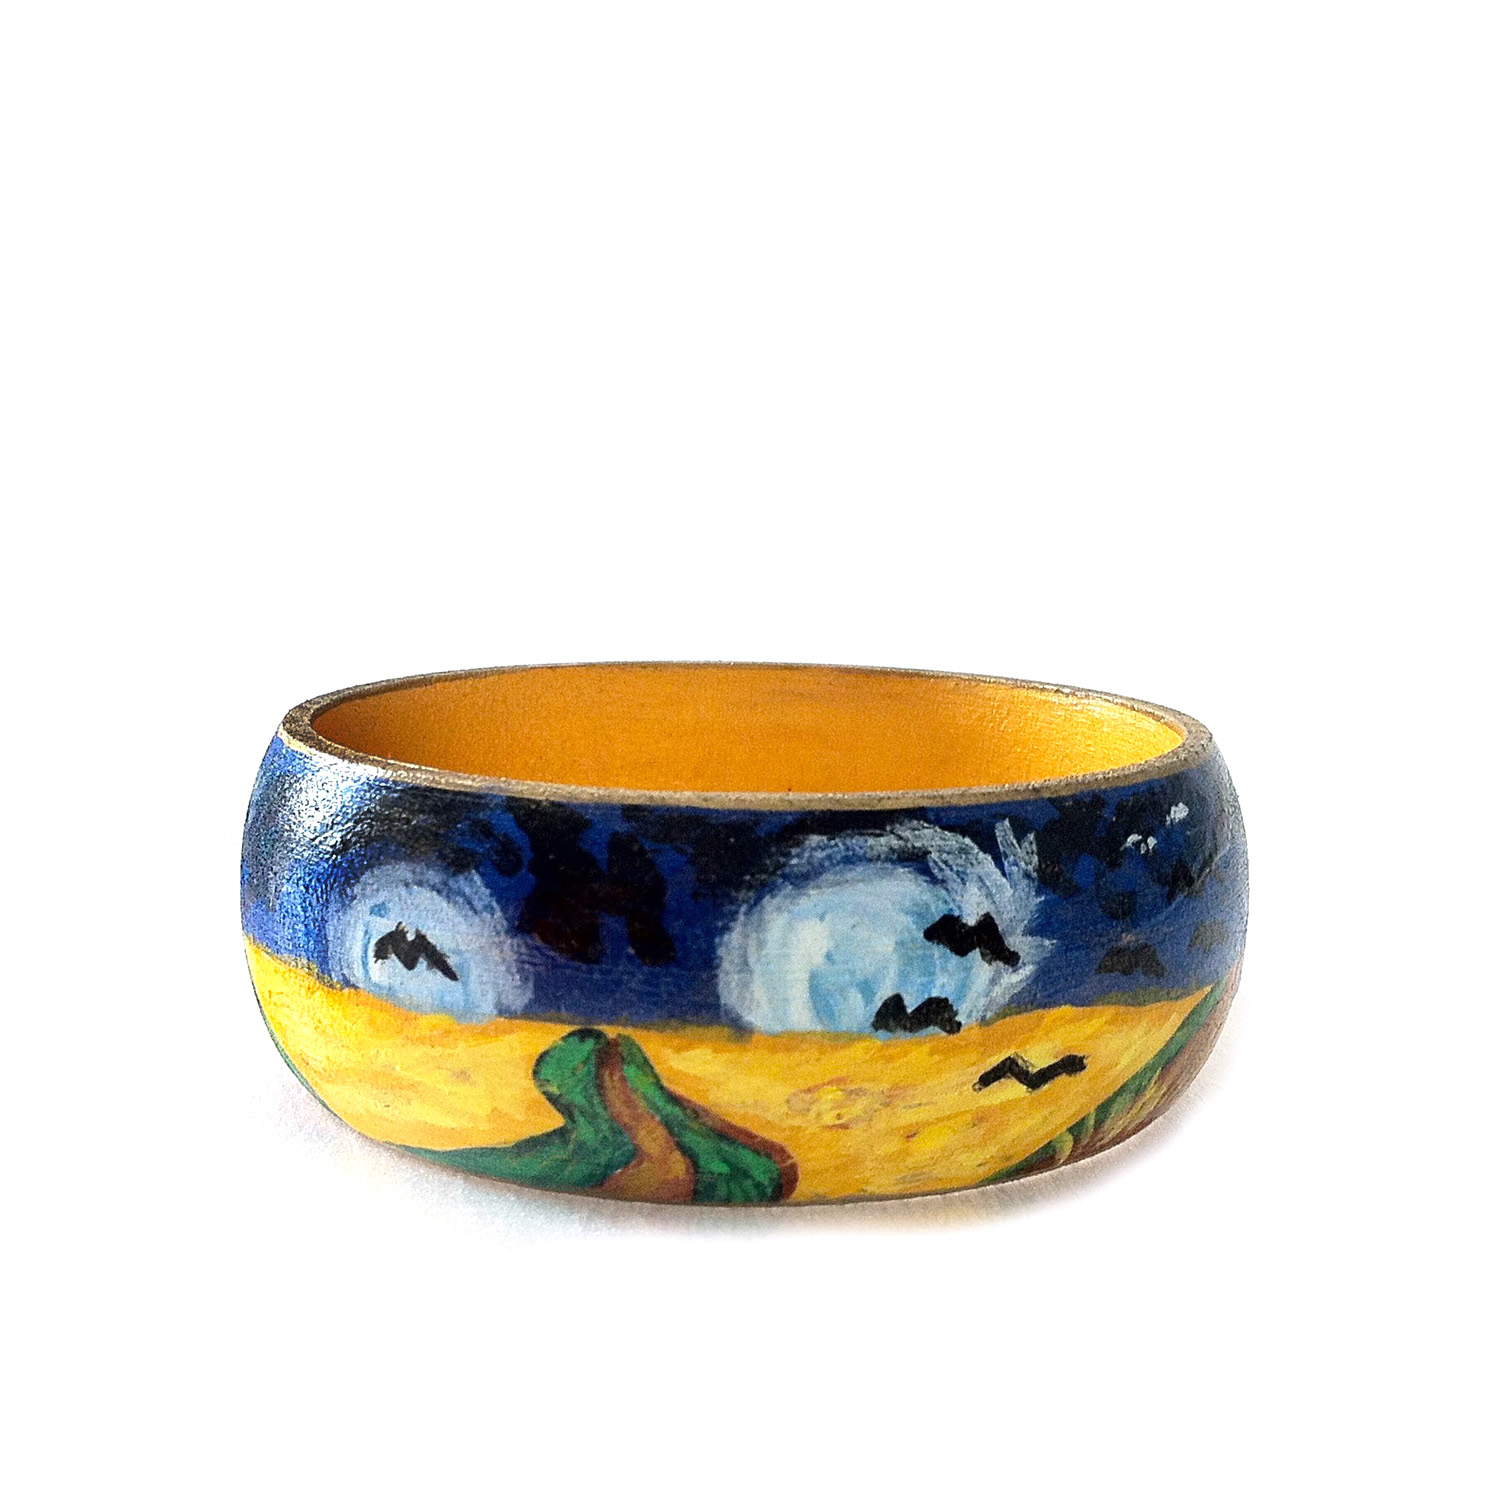 Hand-painted bangle - Wheatfield with flight of crows by Van Gogh